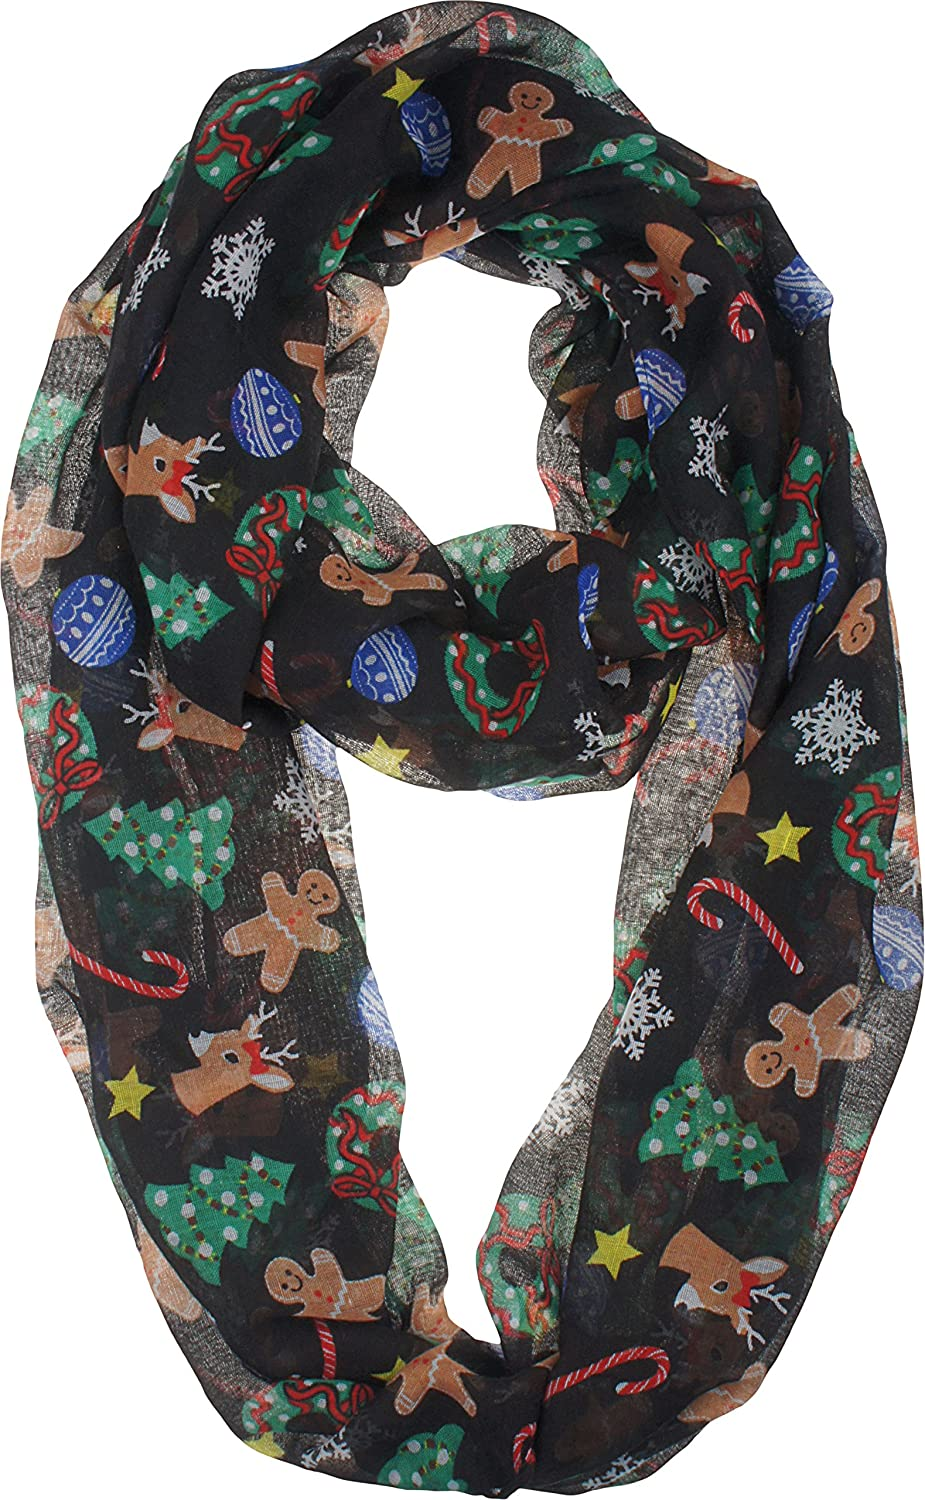 vivian vincent soft light elegant merry christmas sheer infinity scarf c2 at amazon womens clothing store